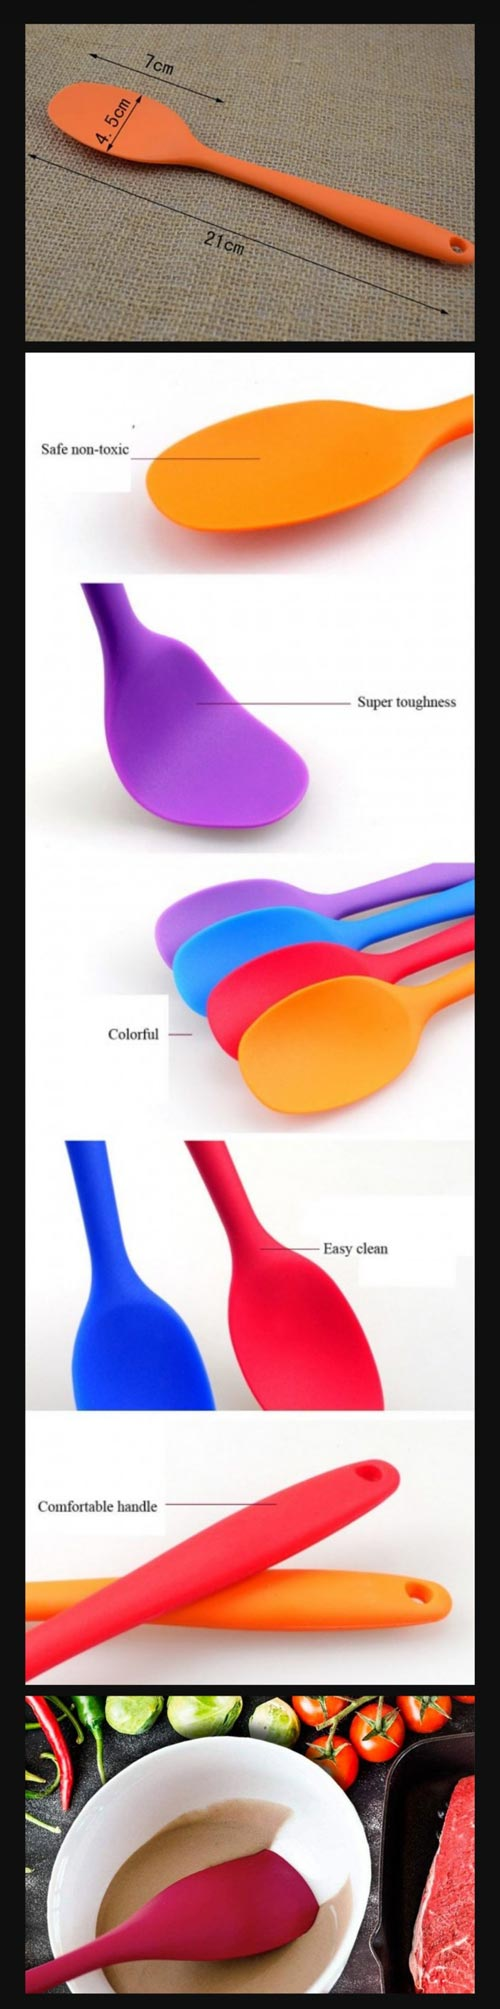 Silicone SpatulaSilicone Spatula For Baking Sale In Pakistan With In Best Price